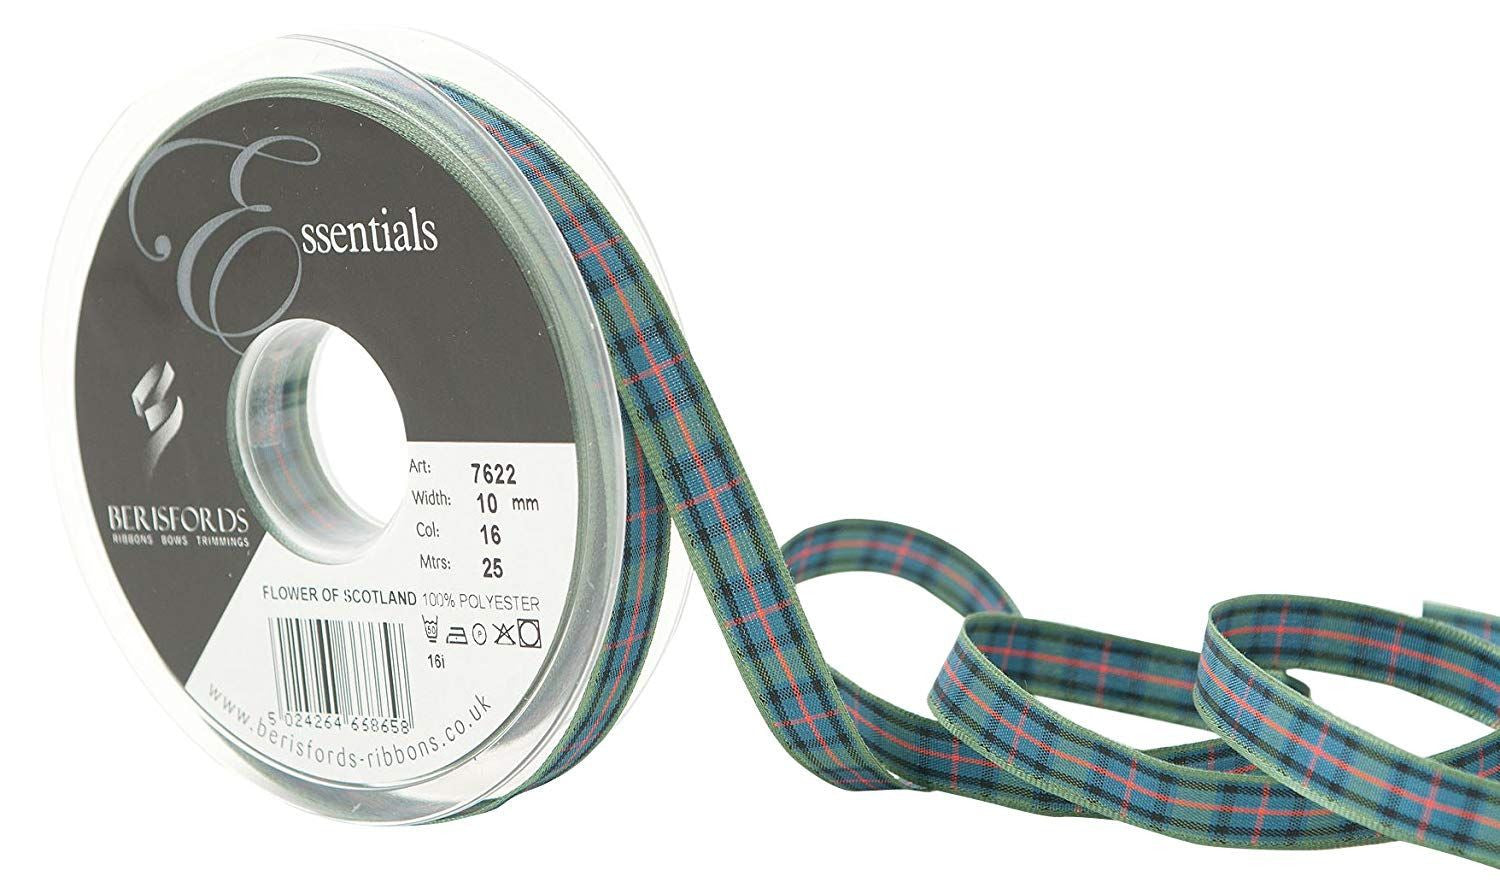 Woven Edge Flower of Scotland Tartan Ribbon